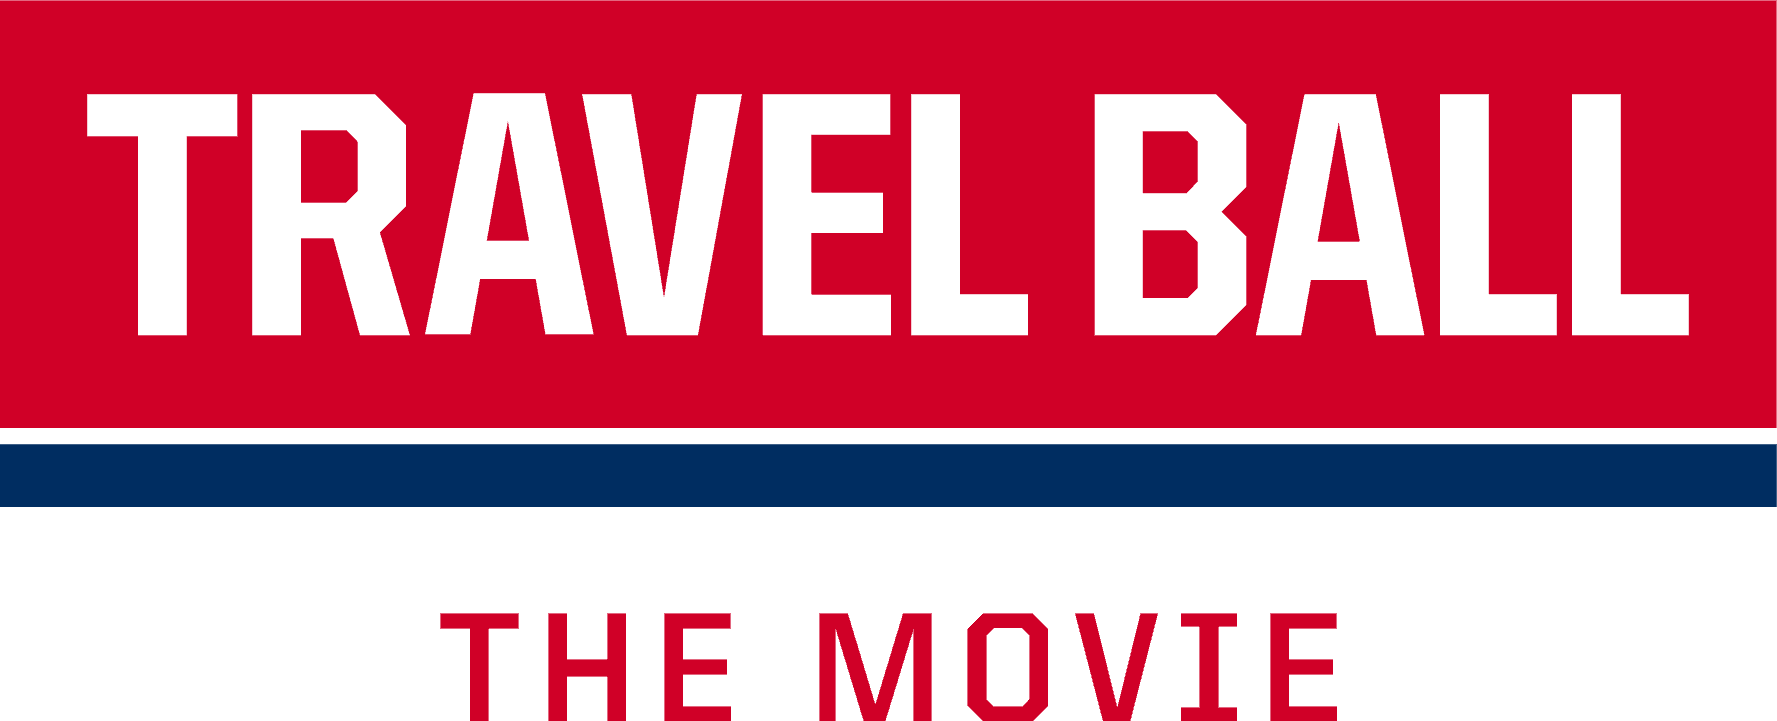 Travel Ball Movie